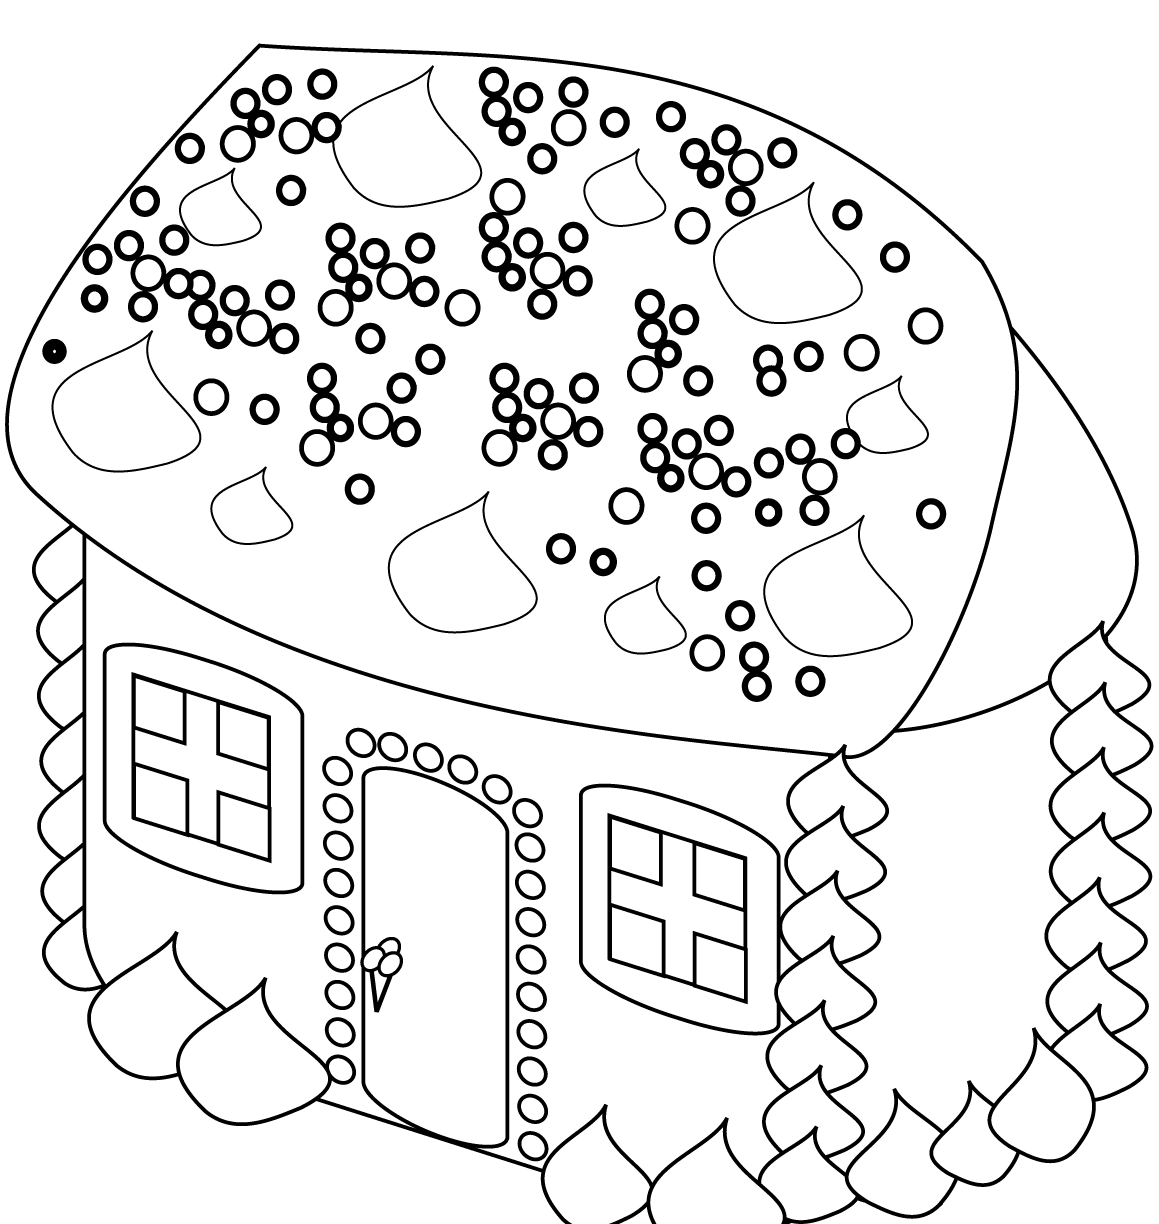 1159x1224 Easy House Coloring Pages Drawing Printabledult Free